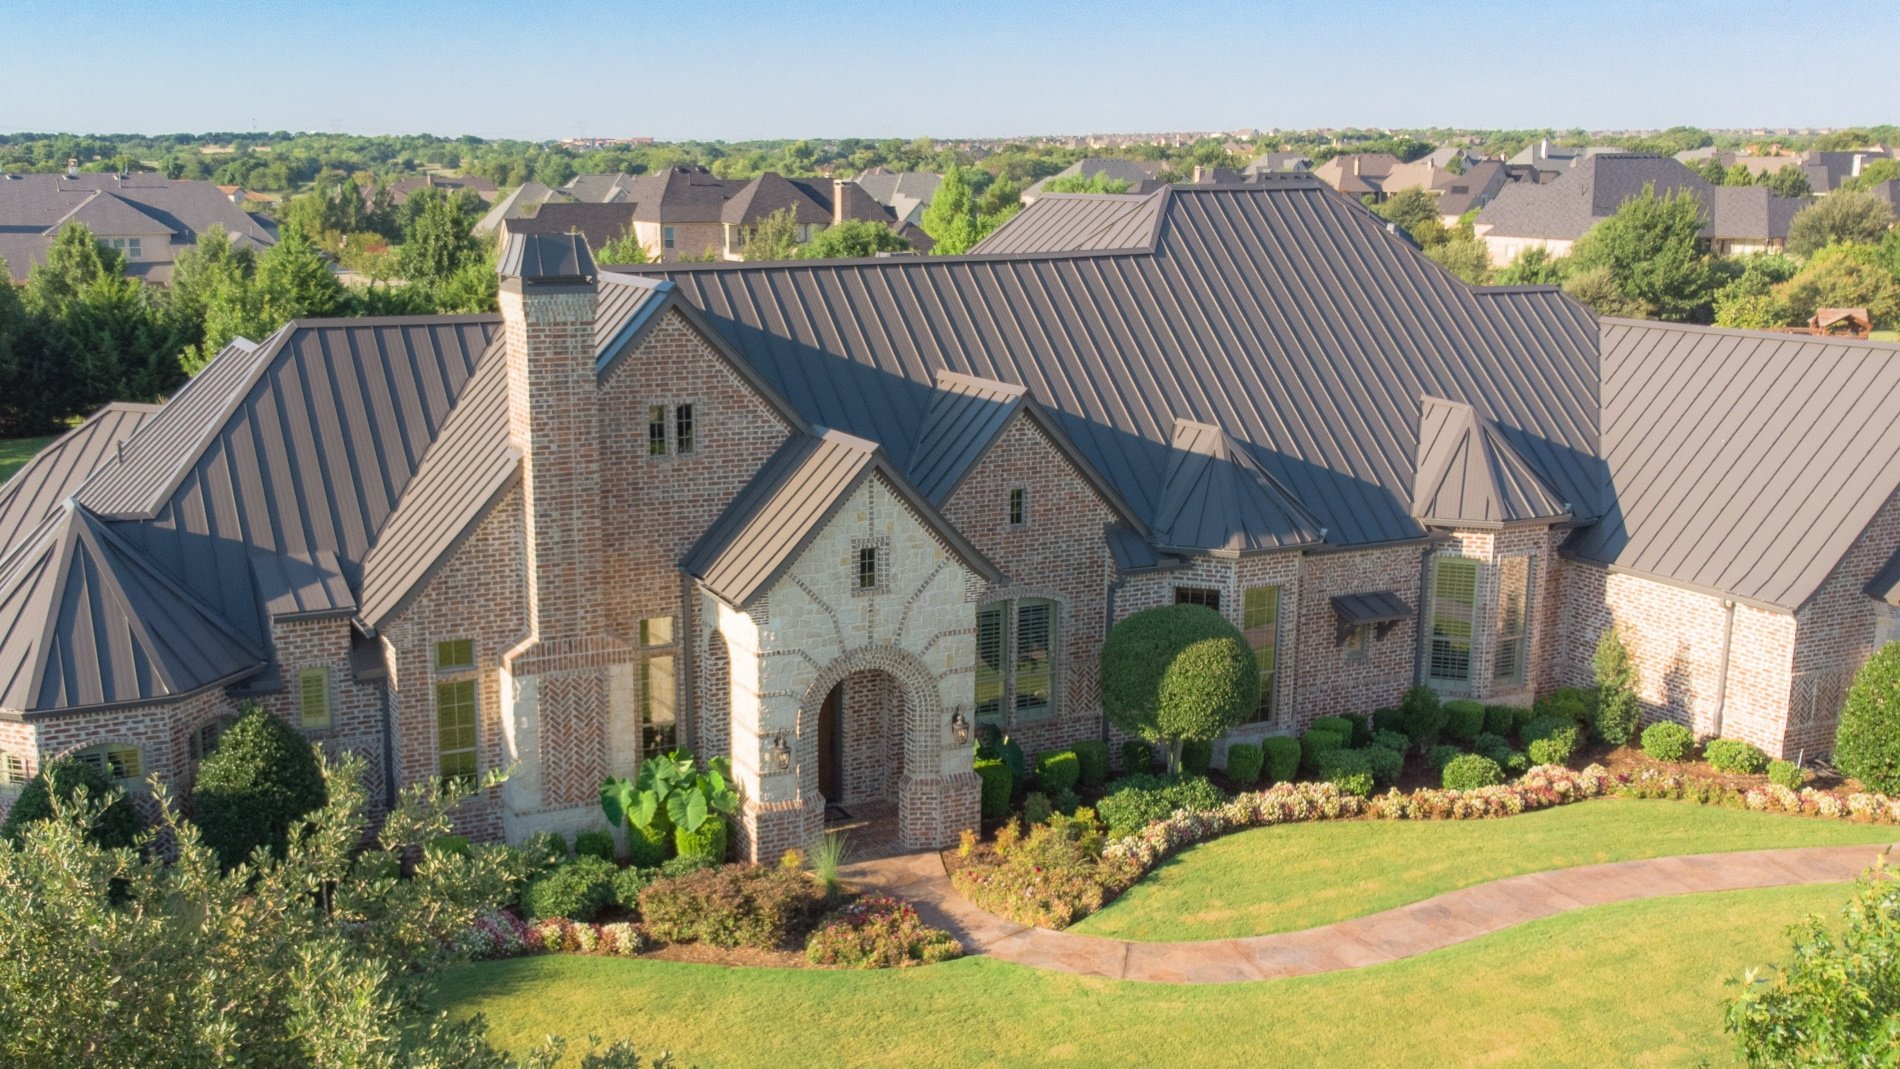 Standing Seam Roofing System in Texas